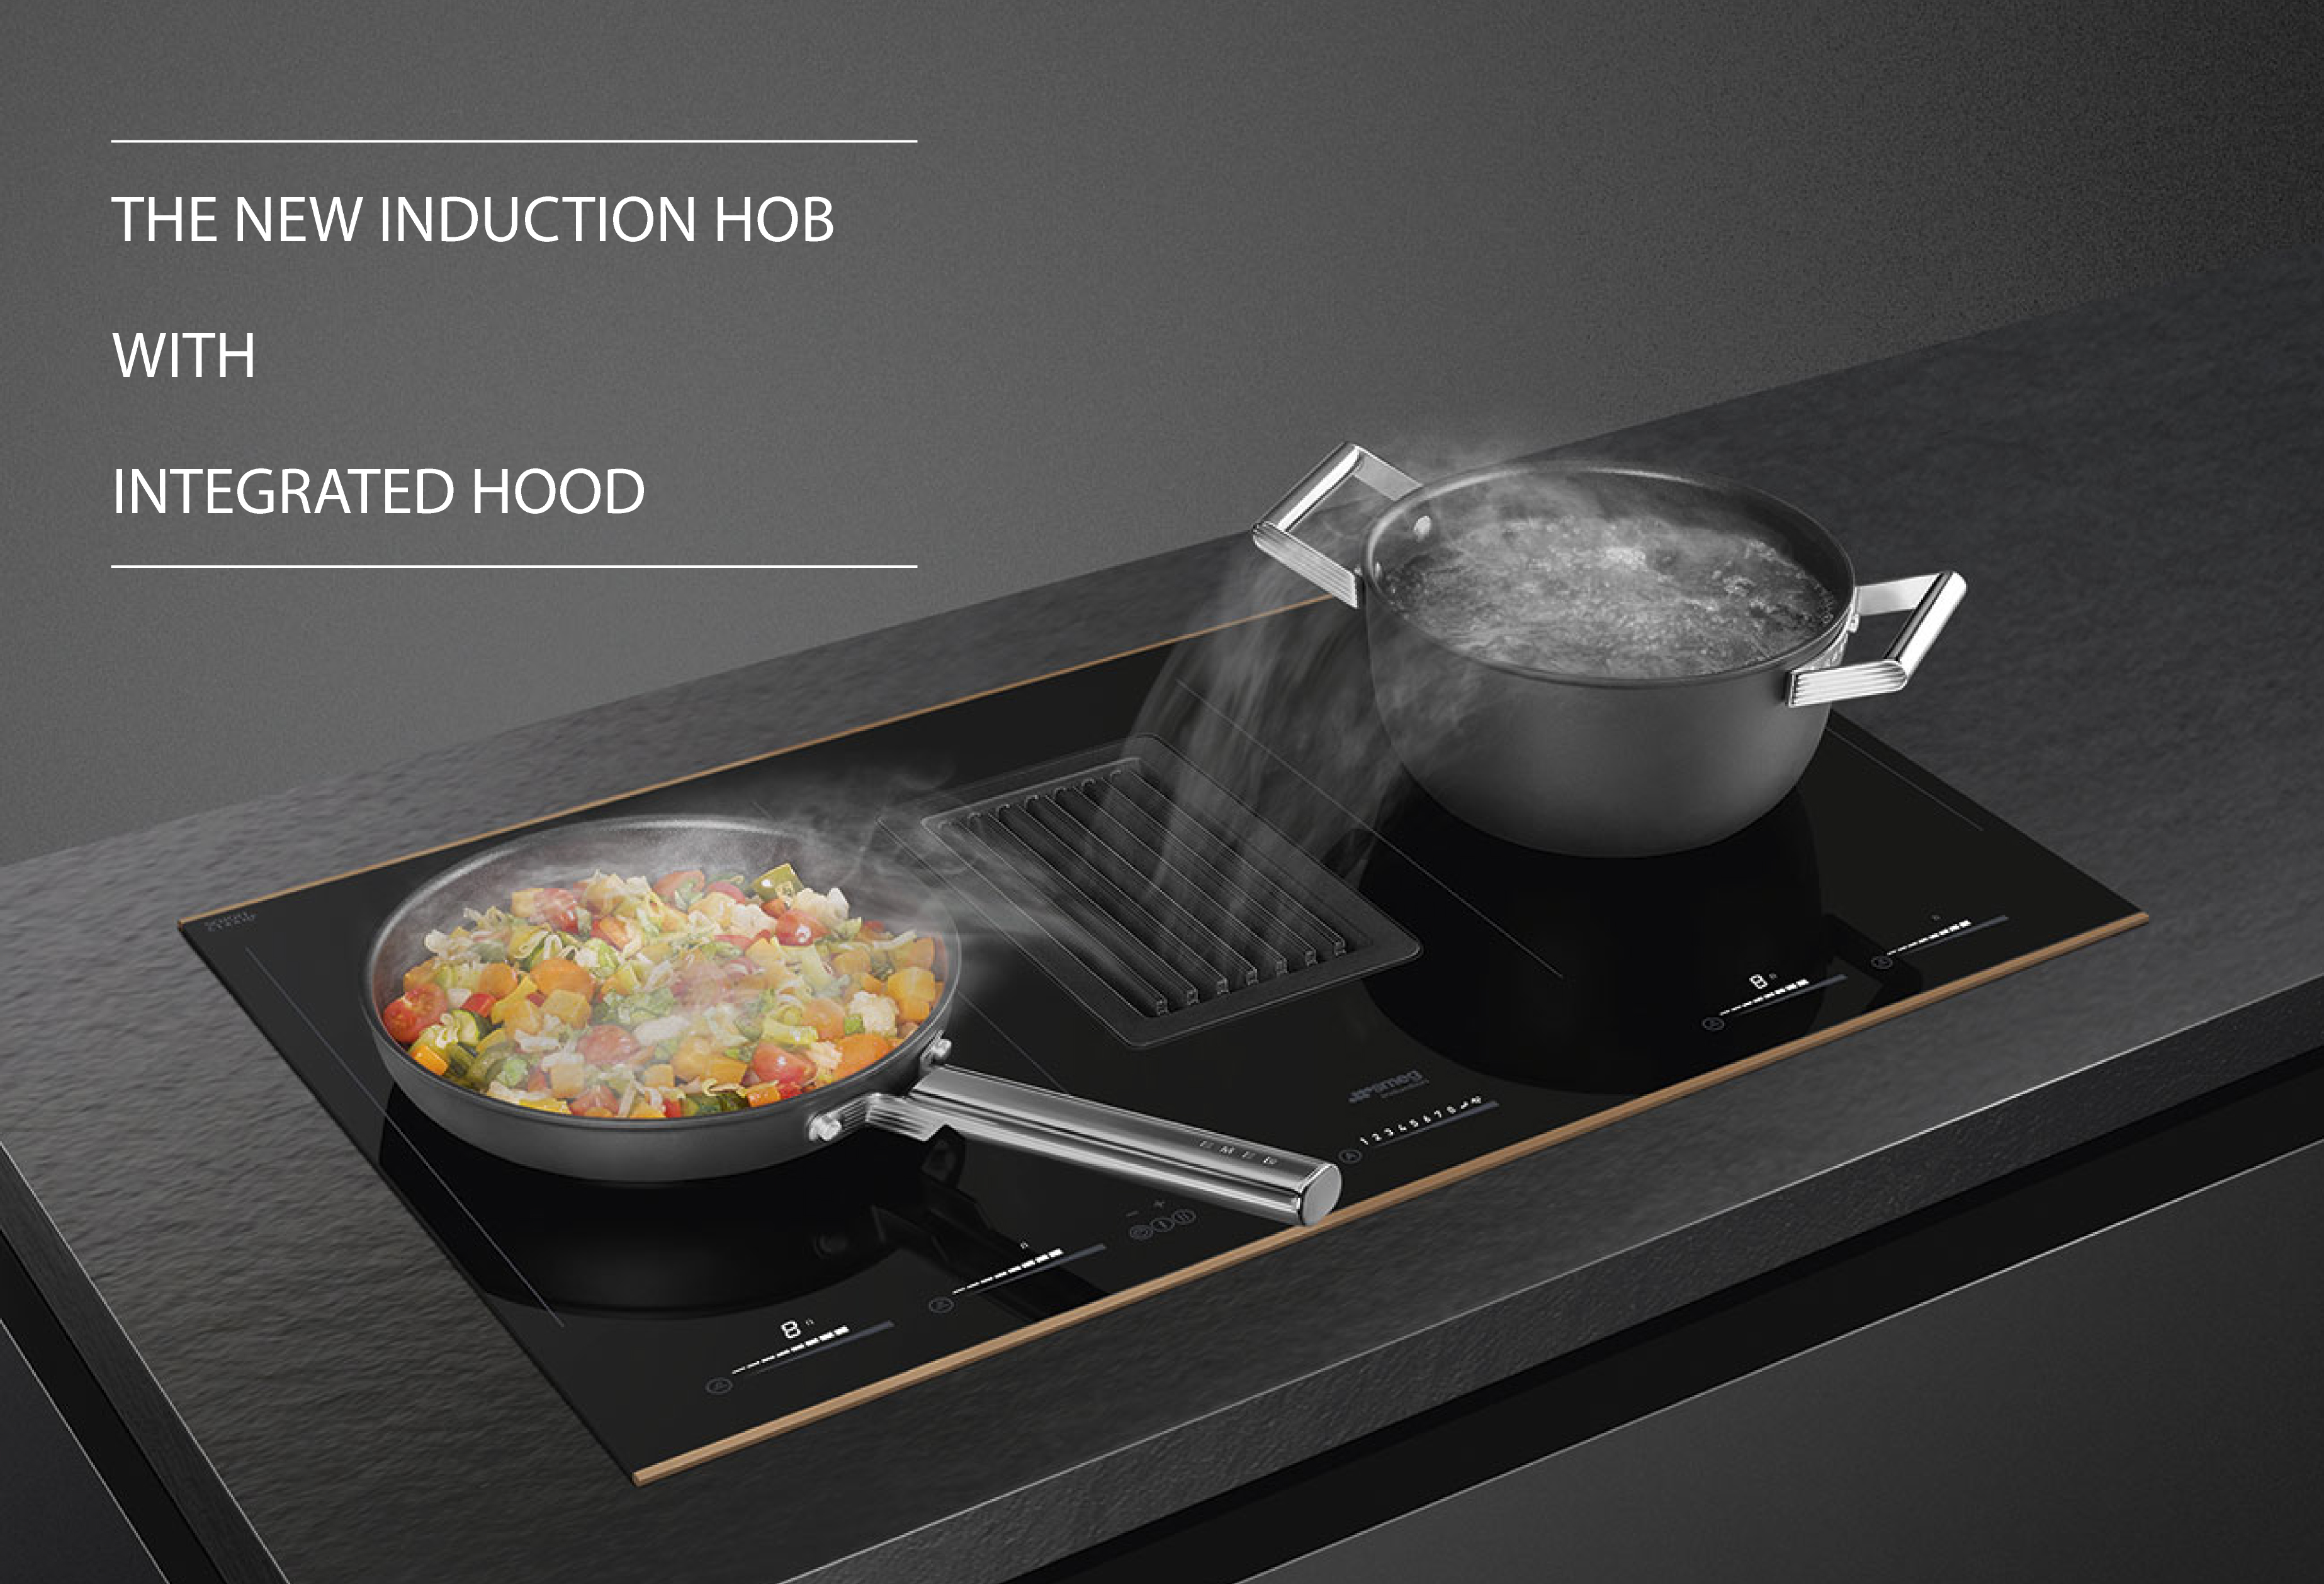 The New Induction Hob with Integrated Hood